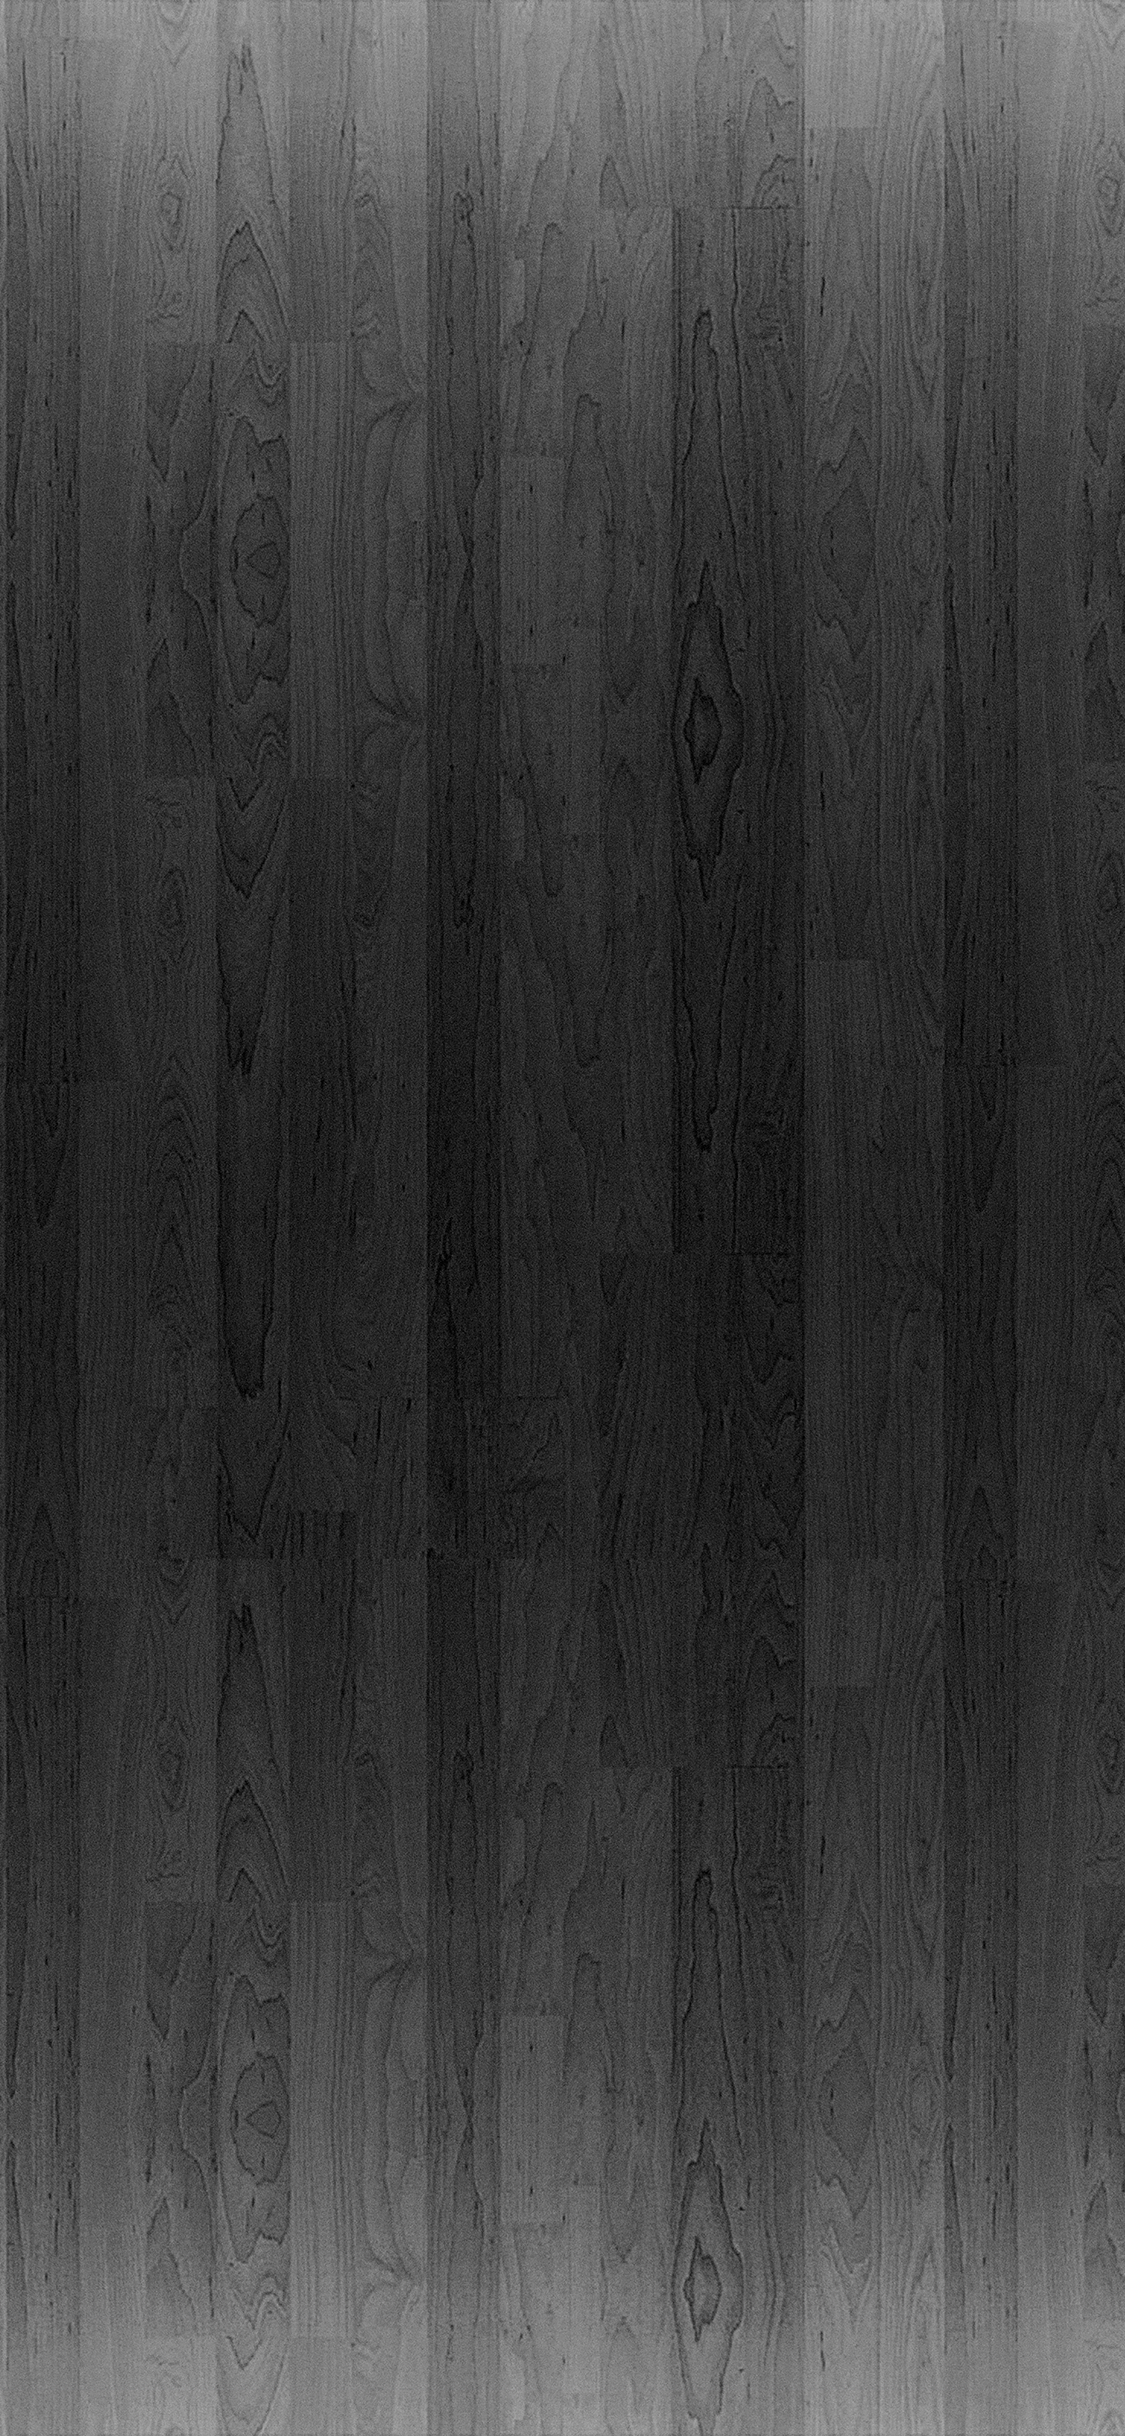 iPhoneXpapers.com-Apple-iPhone-wallpaper-vb67-wallpaper-tree-texture-dark-pattern